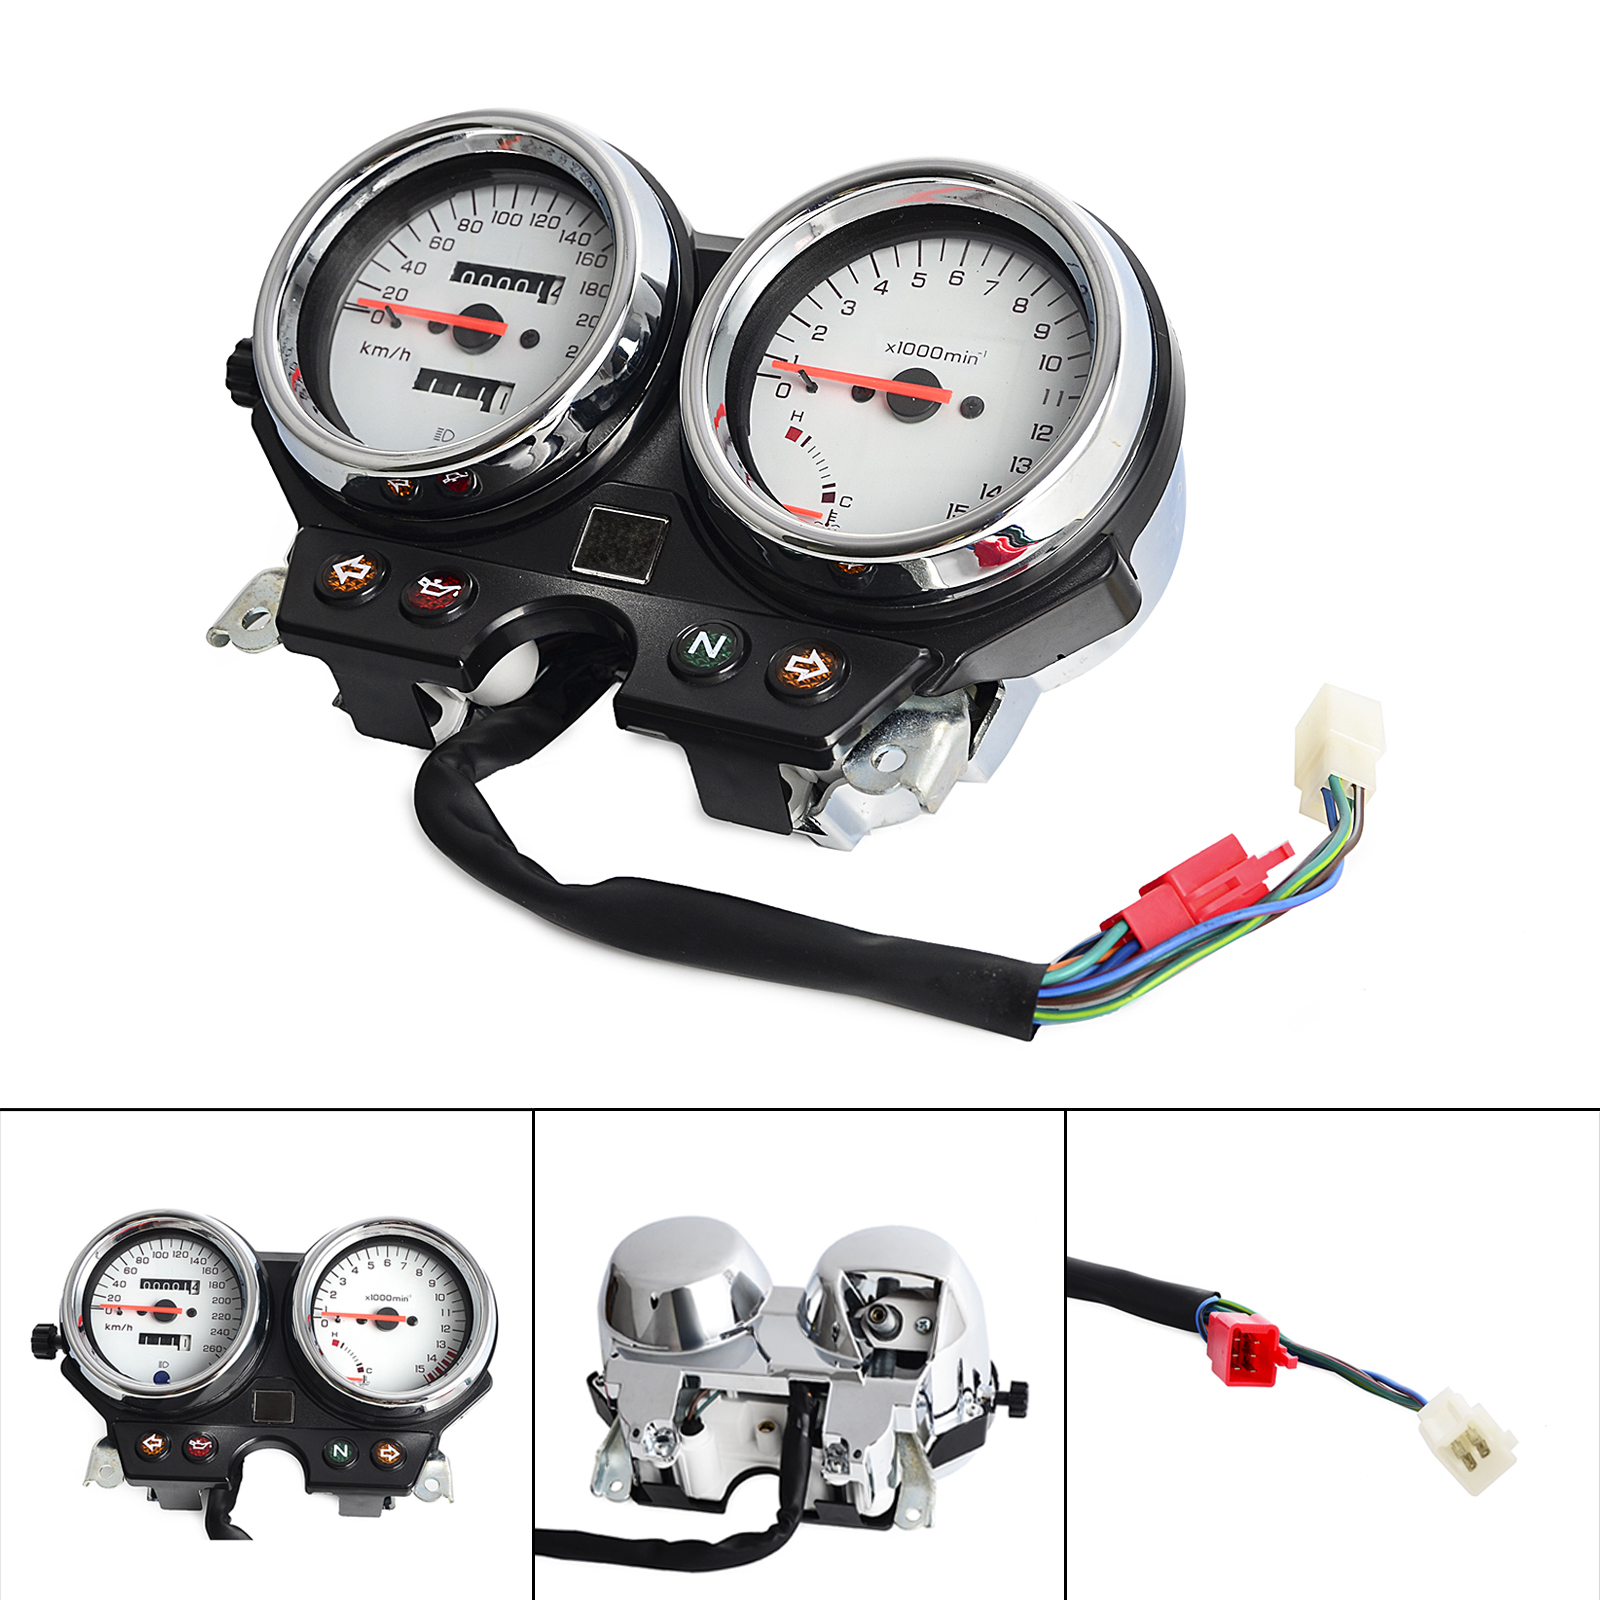 Motorcycle Gauge Cluster Speedometer For Honda CB600 Hornet 600 1996 1997 1998 1999 2000 2001 2002 Hornet600 NEW